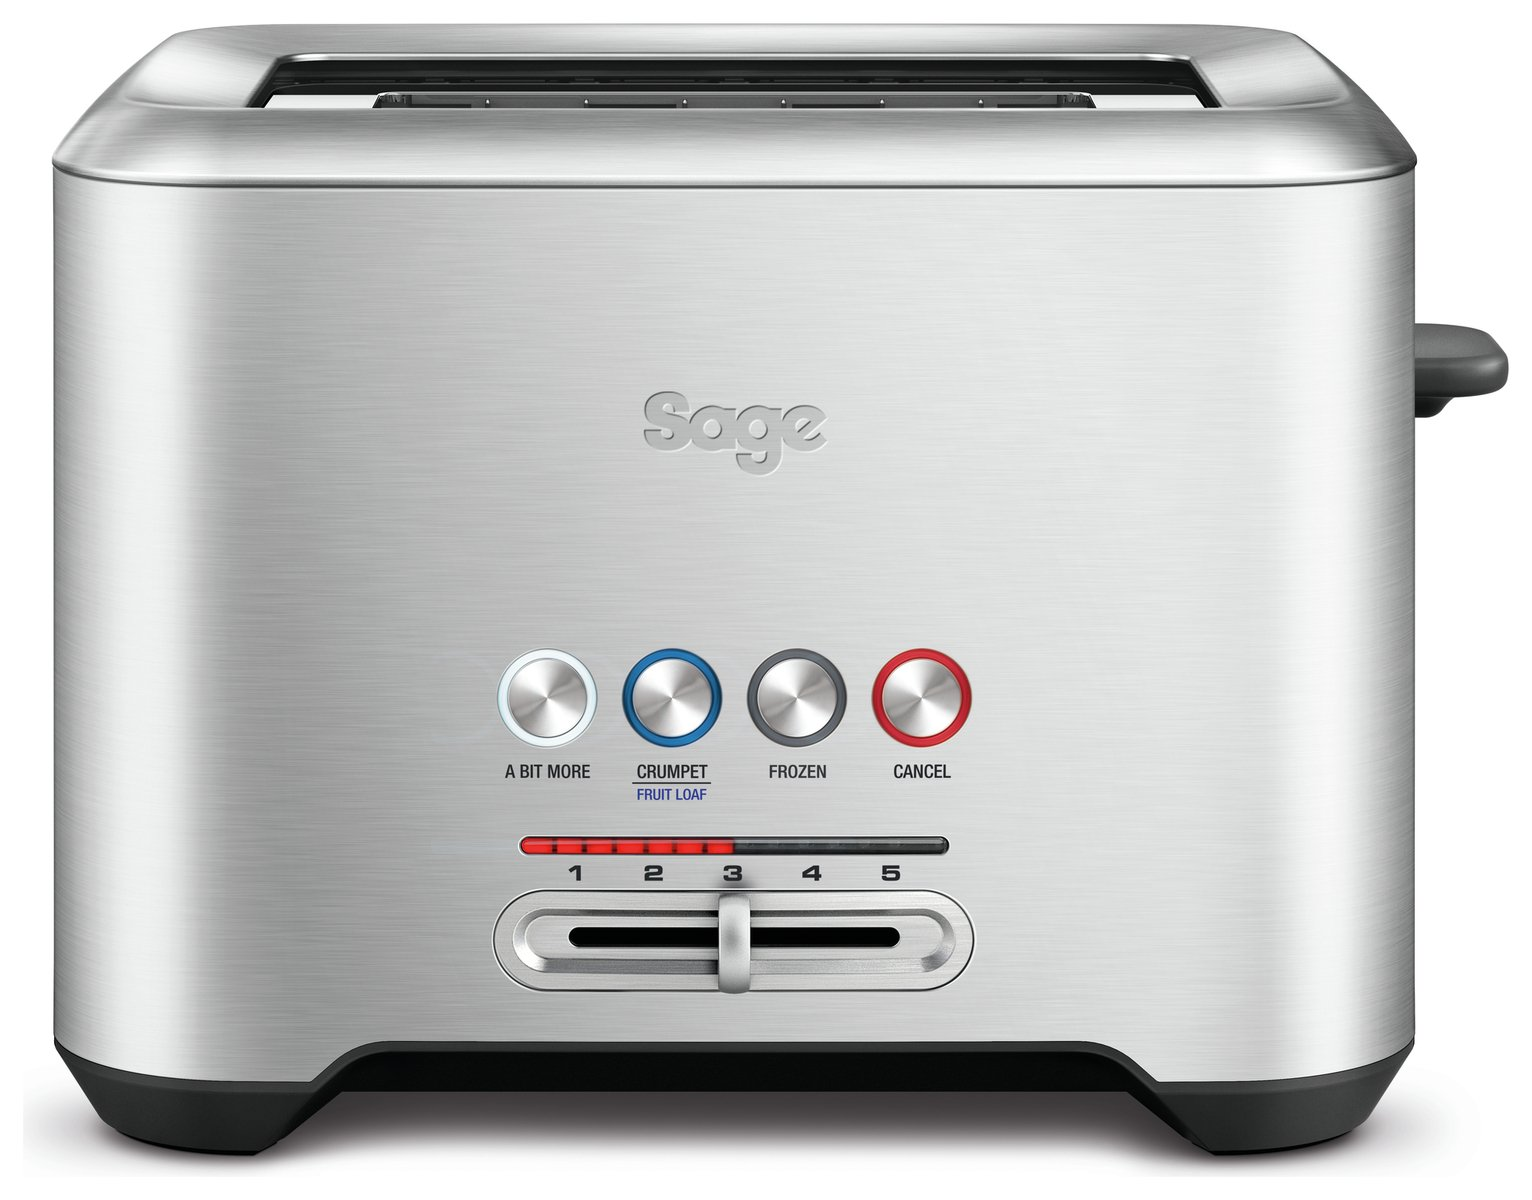 Sage BTA720UK A Bit More 2 Slice Toaster - Stainless Steel